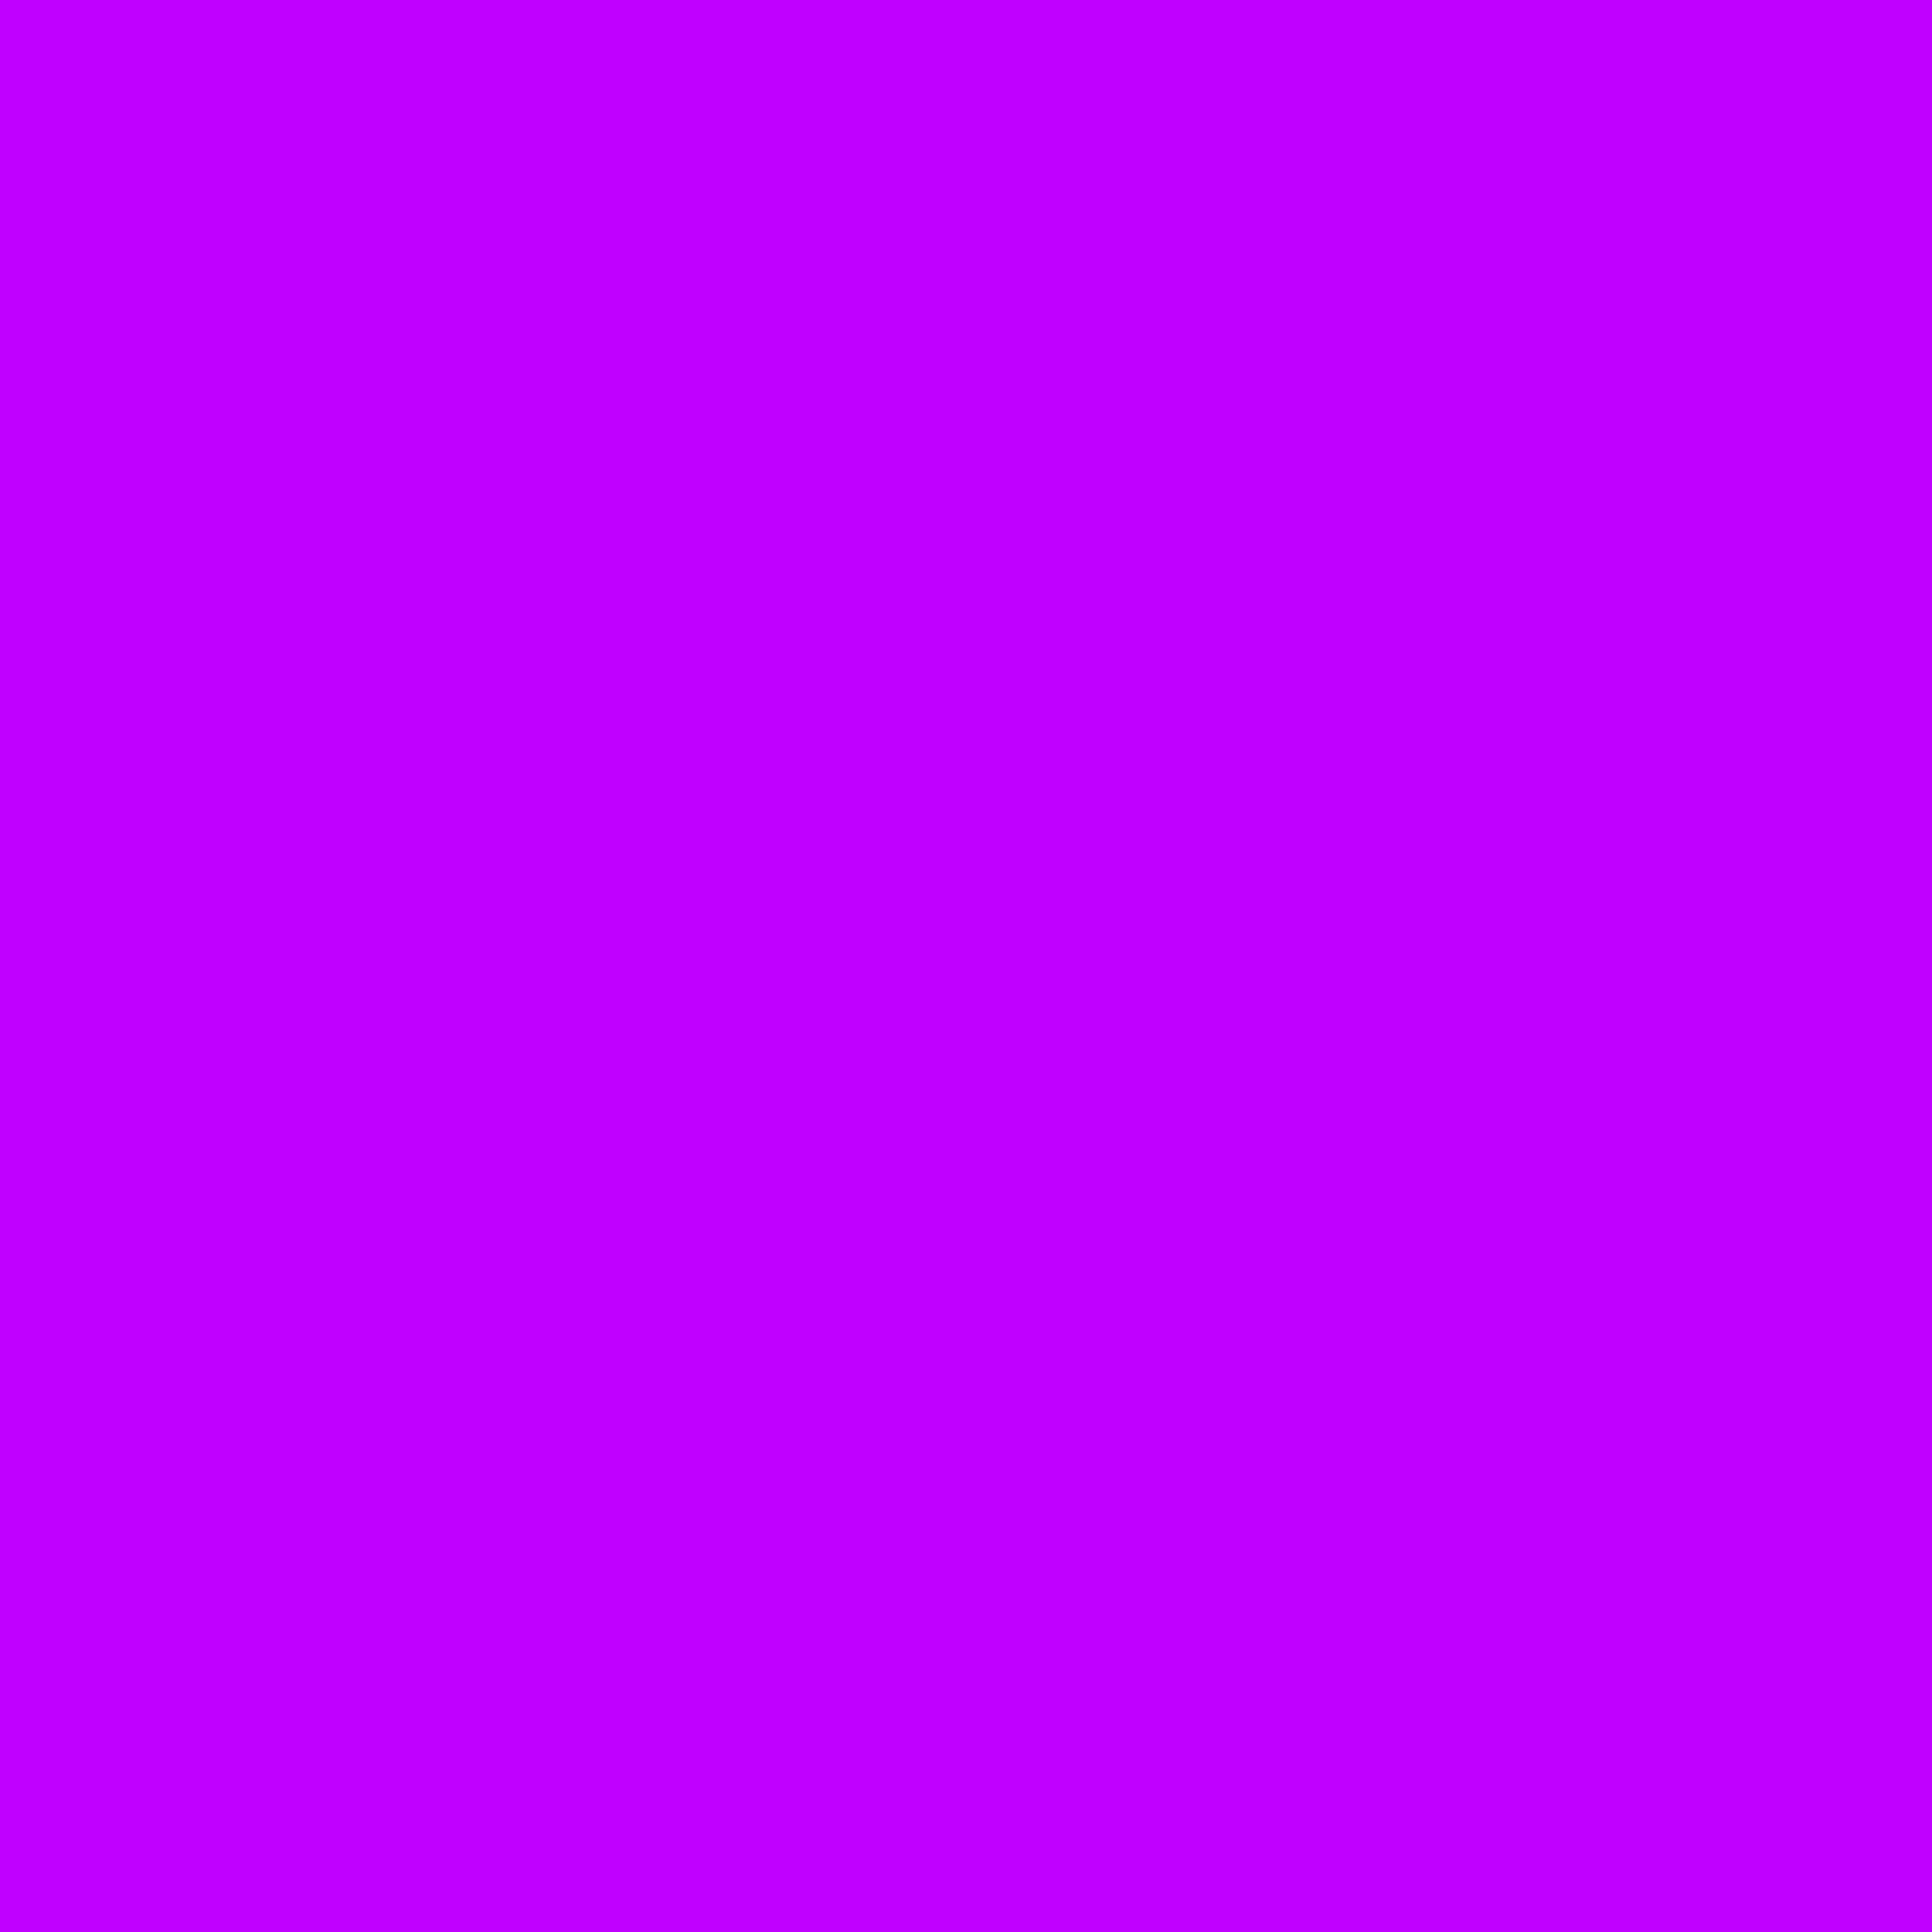 Is purple a gay color